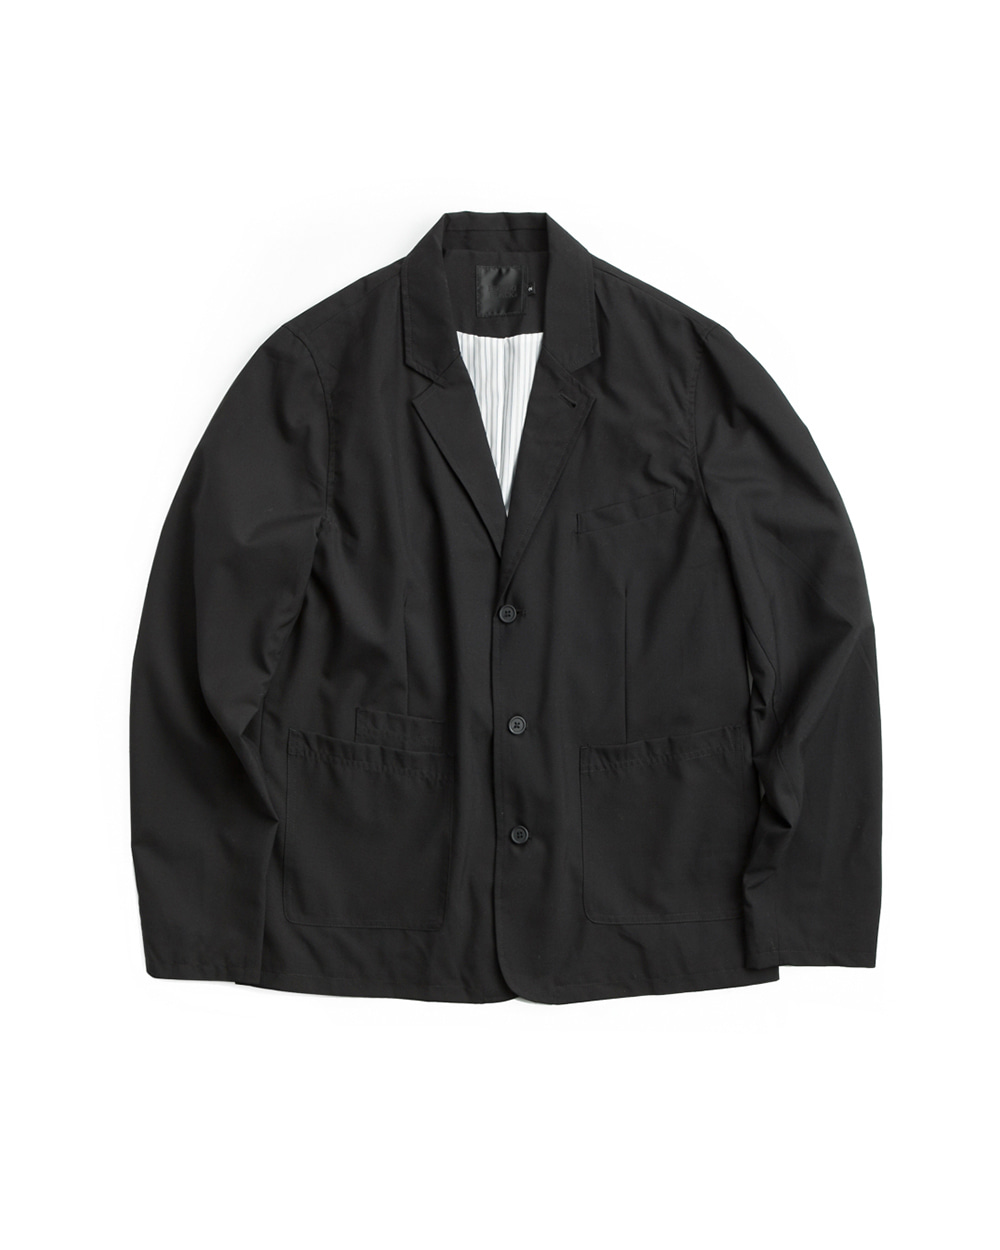 REGULAR FORMAL JACKET BLACK